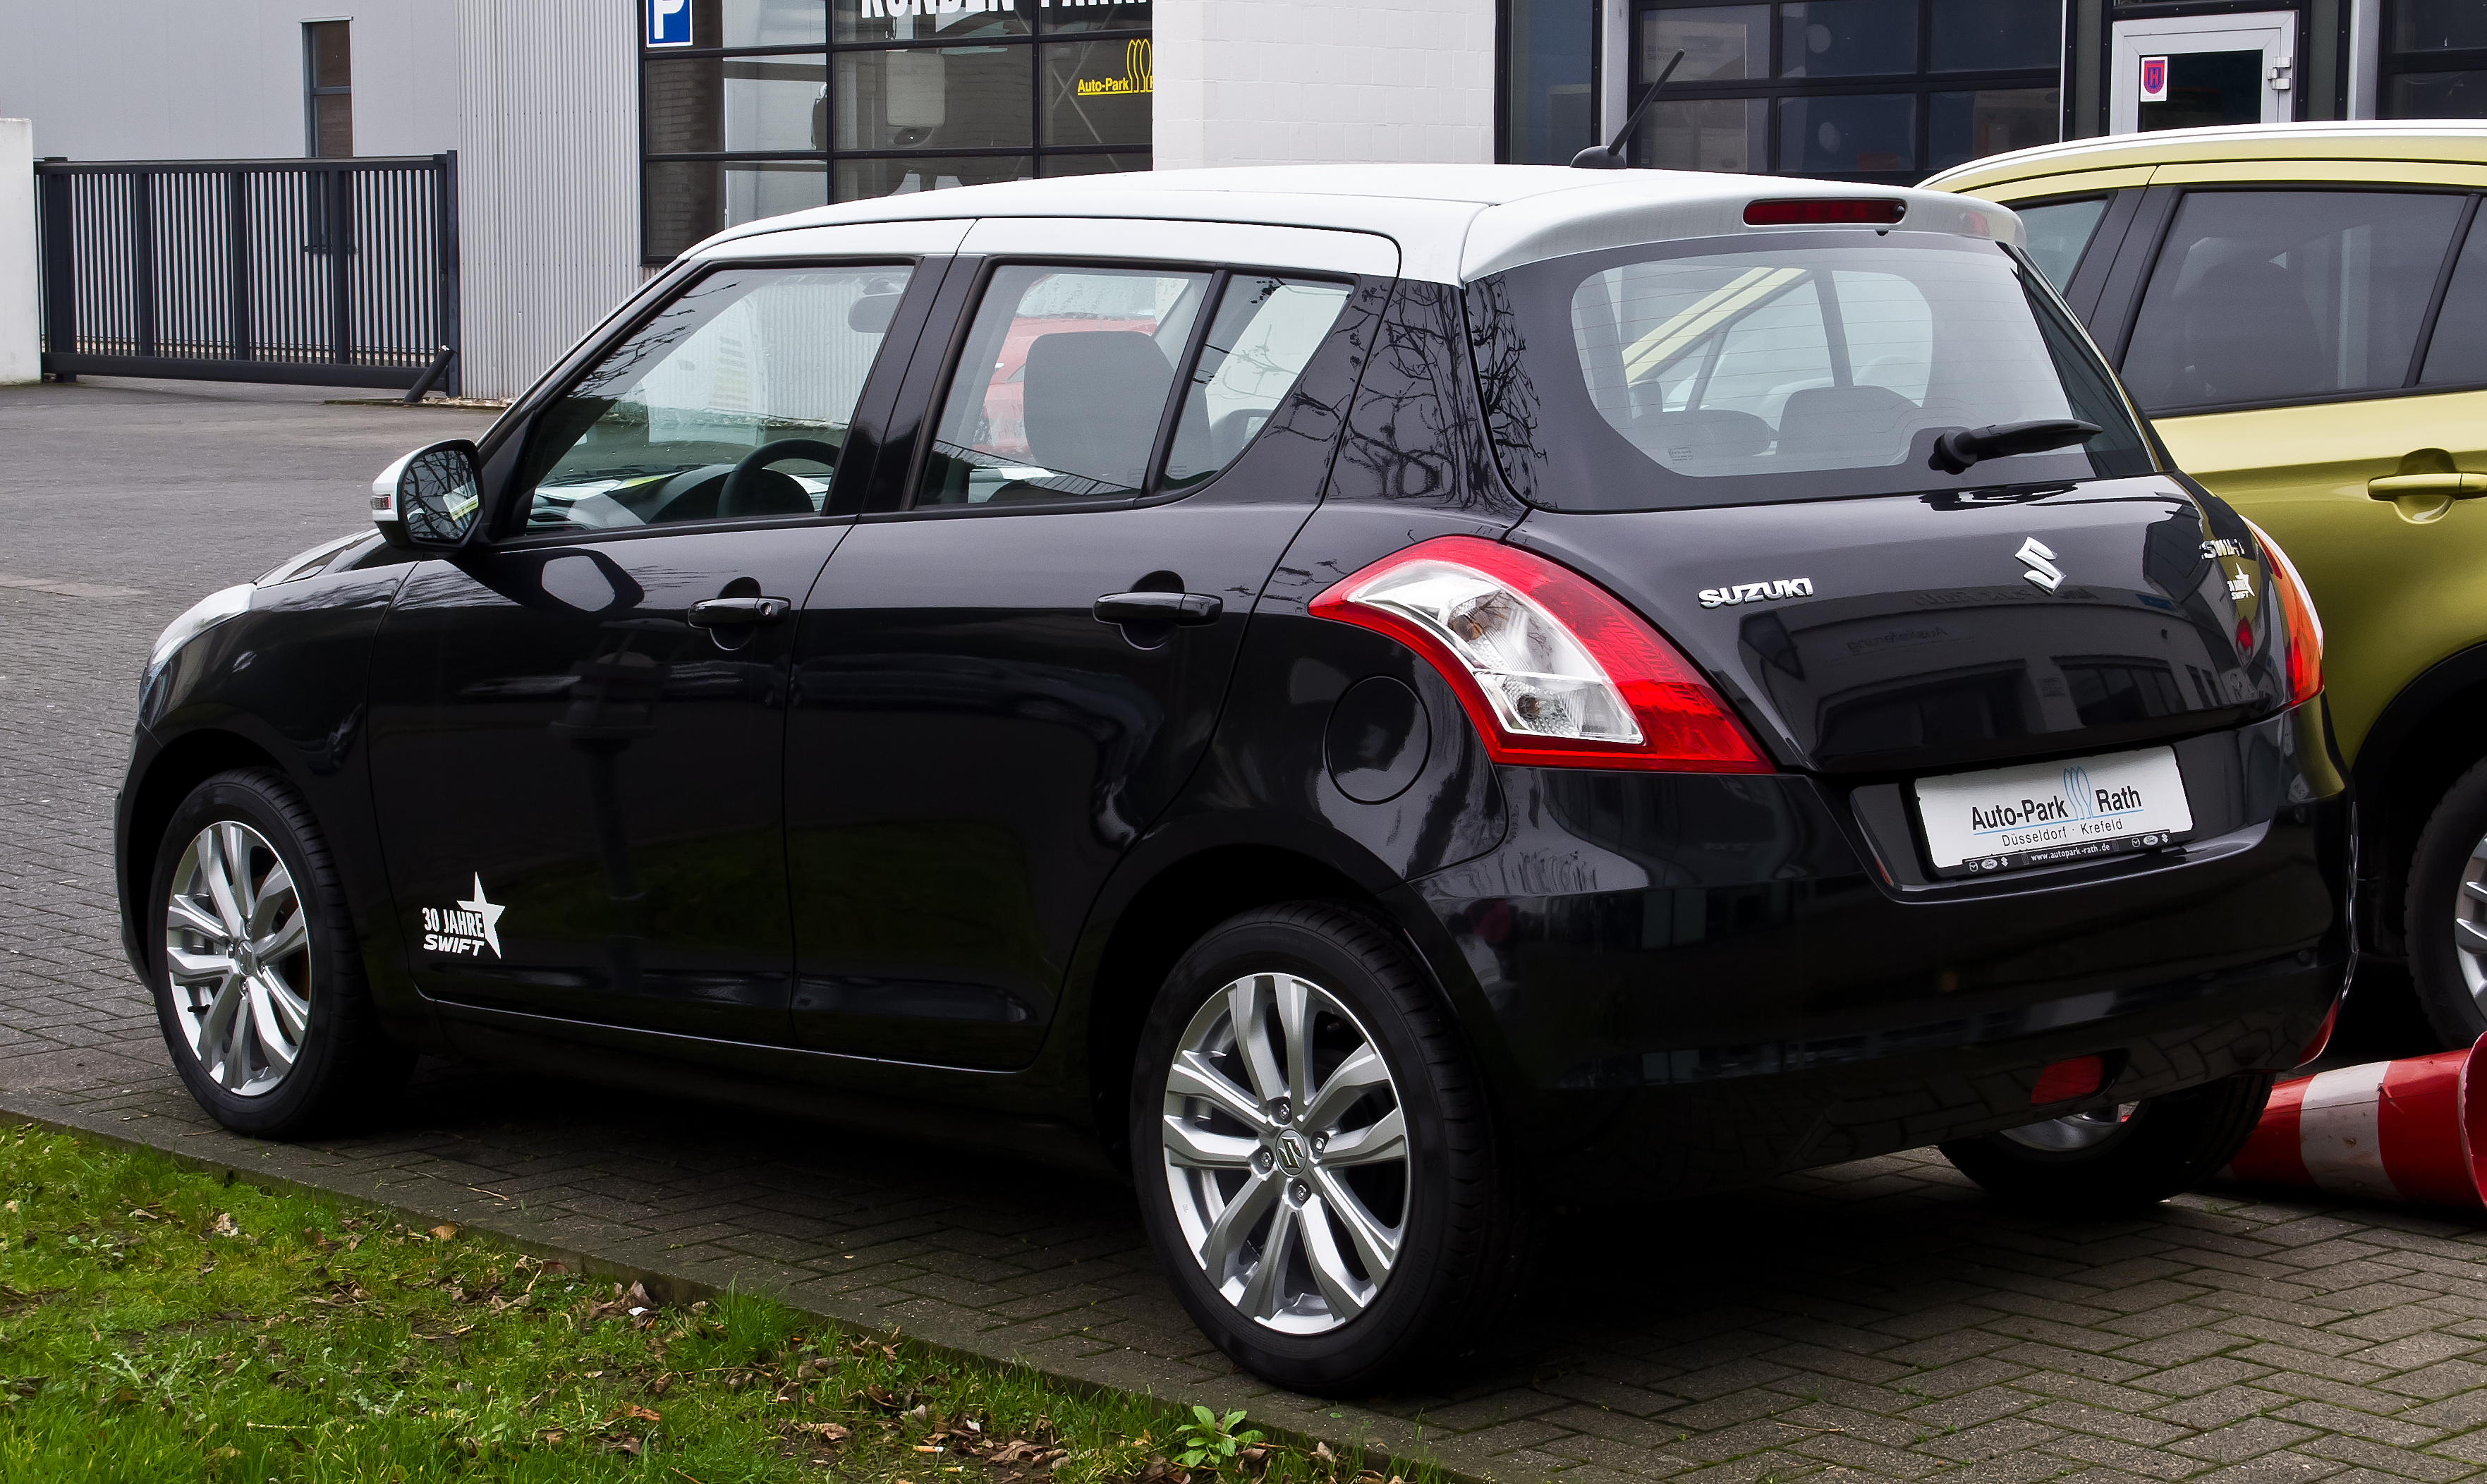 Suzuki Swift 1.2 2013 photo - 1